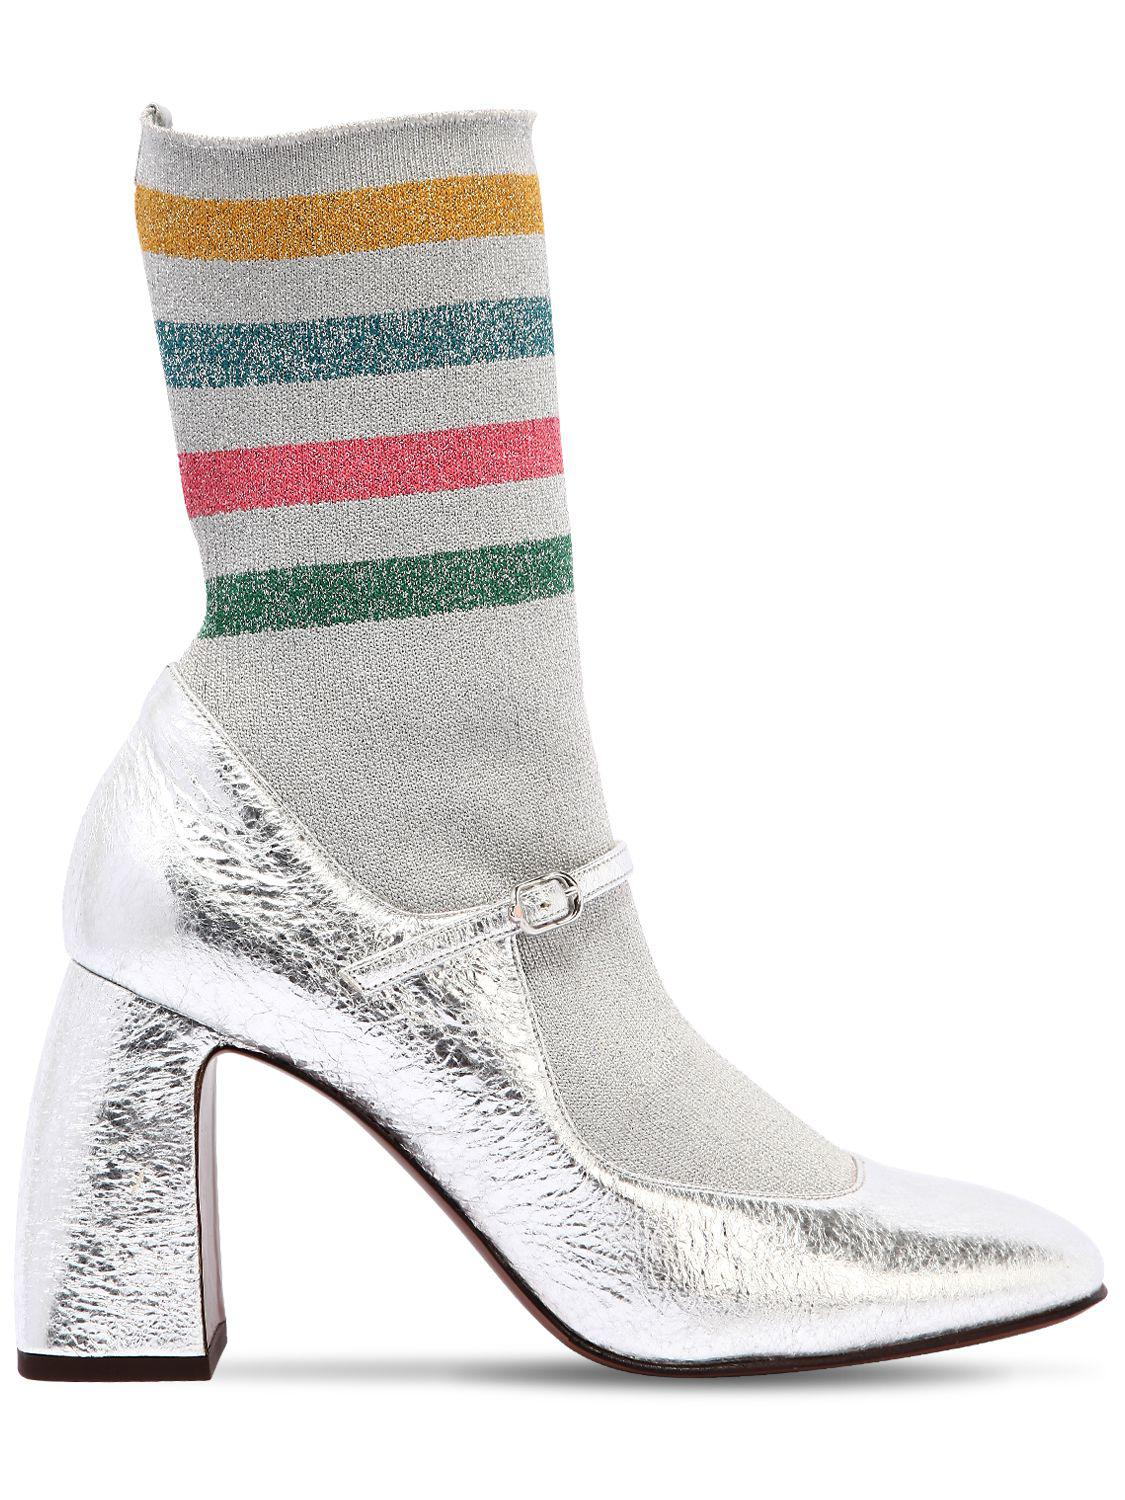 L Autre Chose 90MM SOCK CRACKLED LEATHER BOOTS